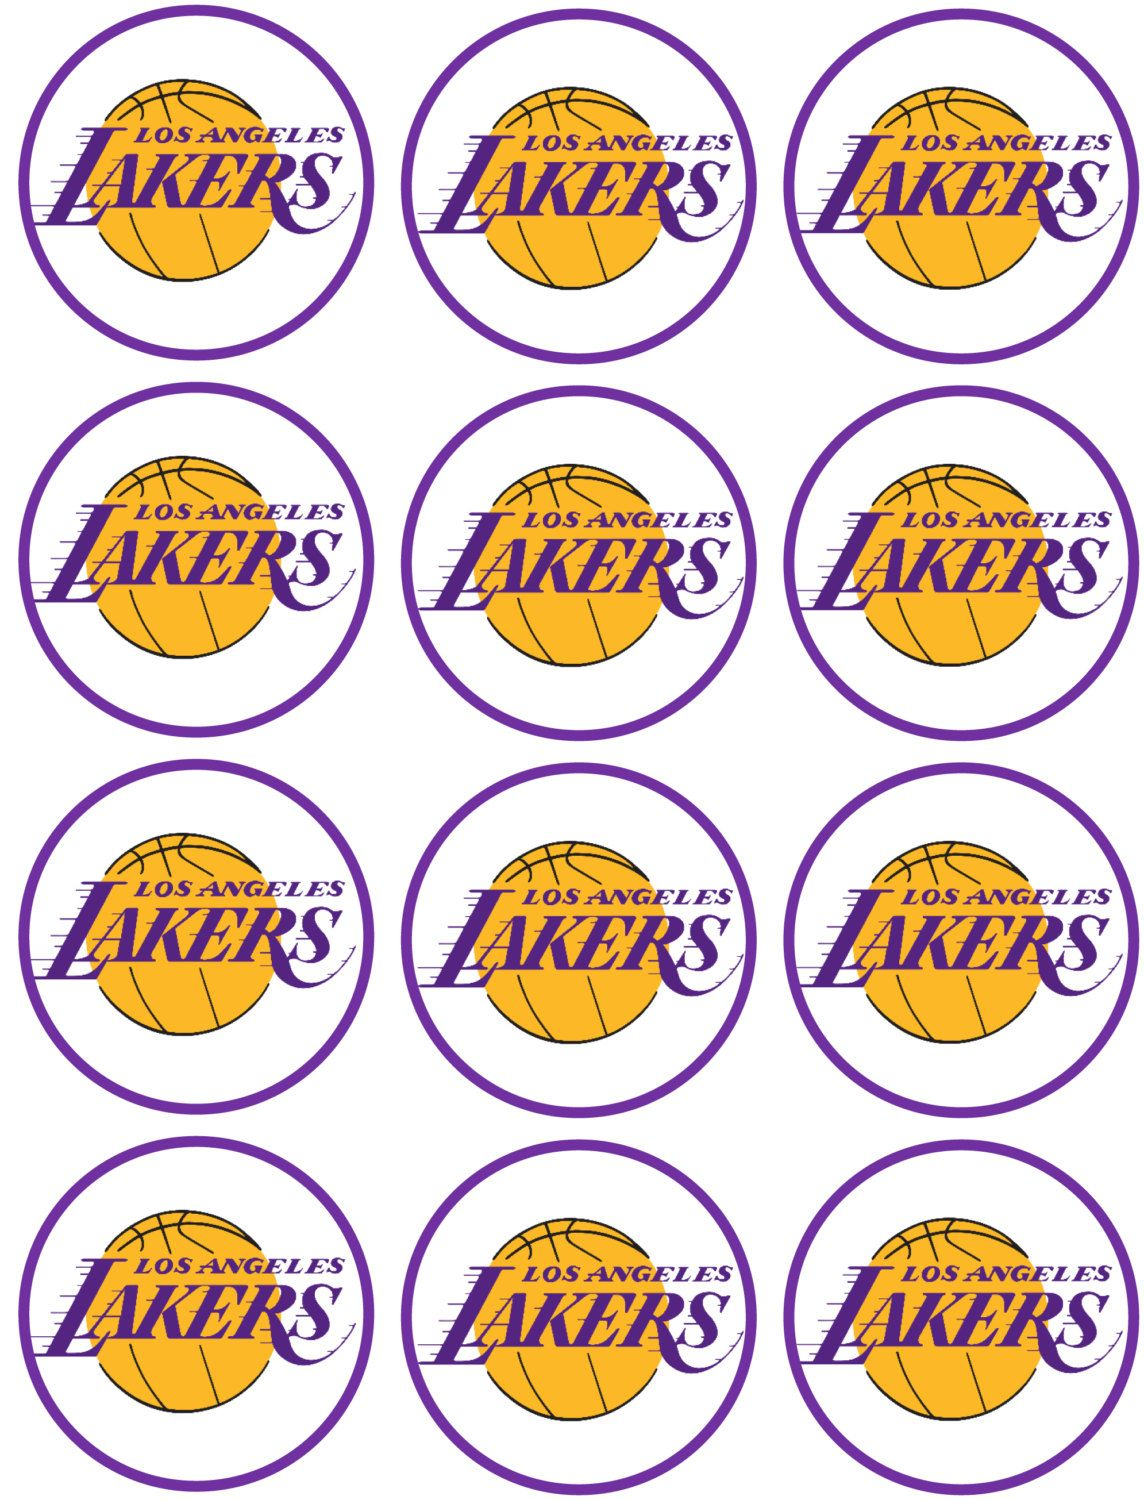 Basketball Edible Images Cupcake Toppers Cupcake Toppers Free Edible Images Cupcake Toppers